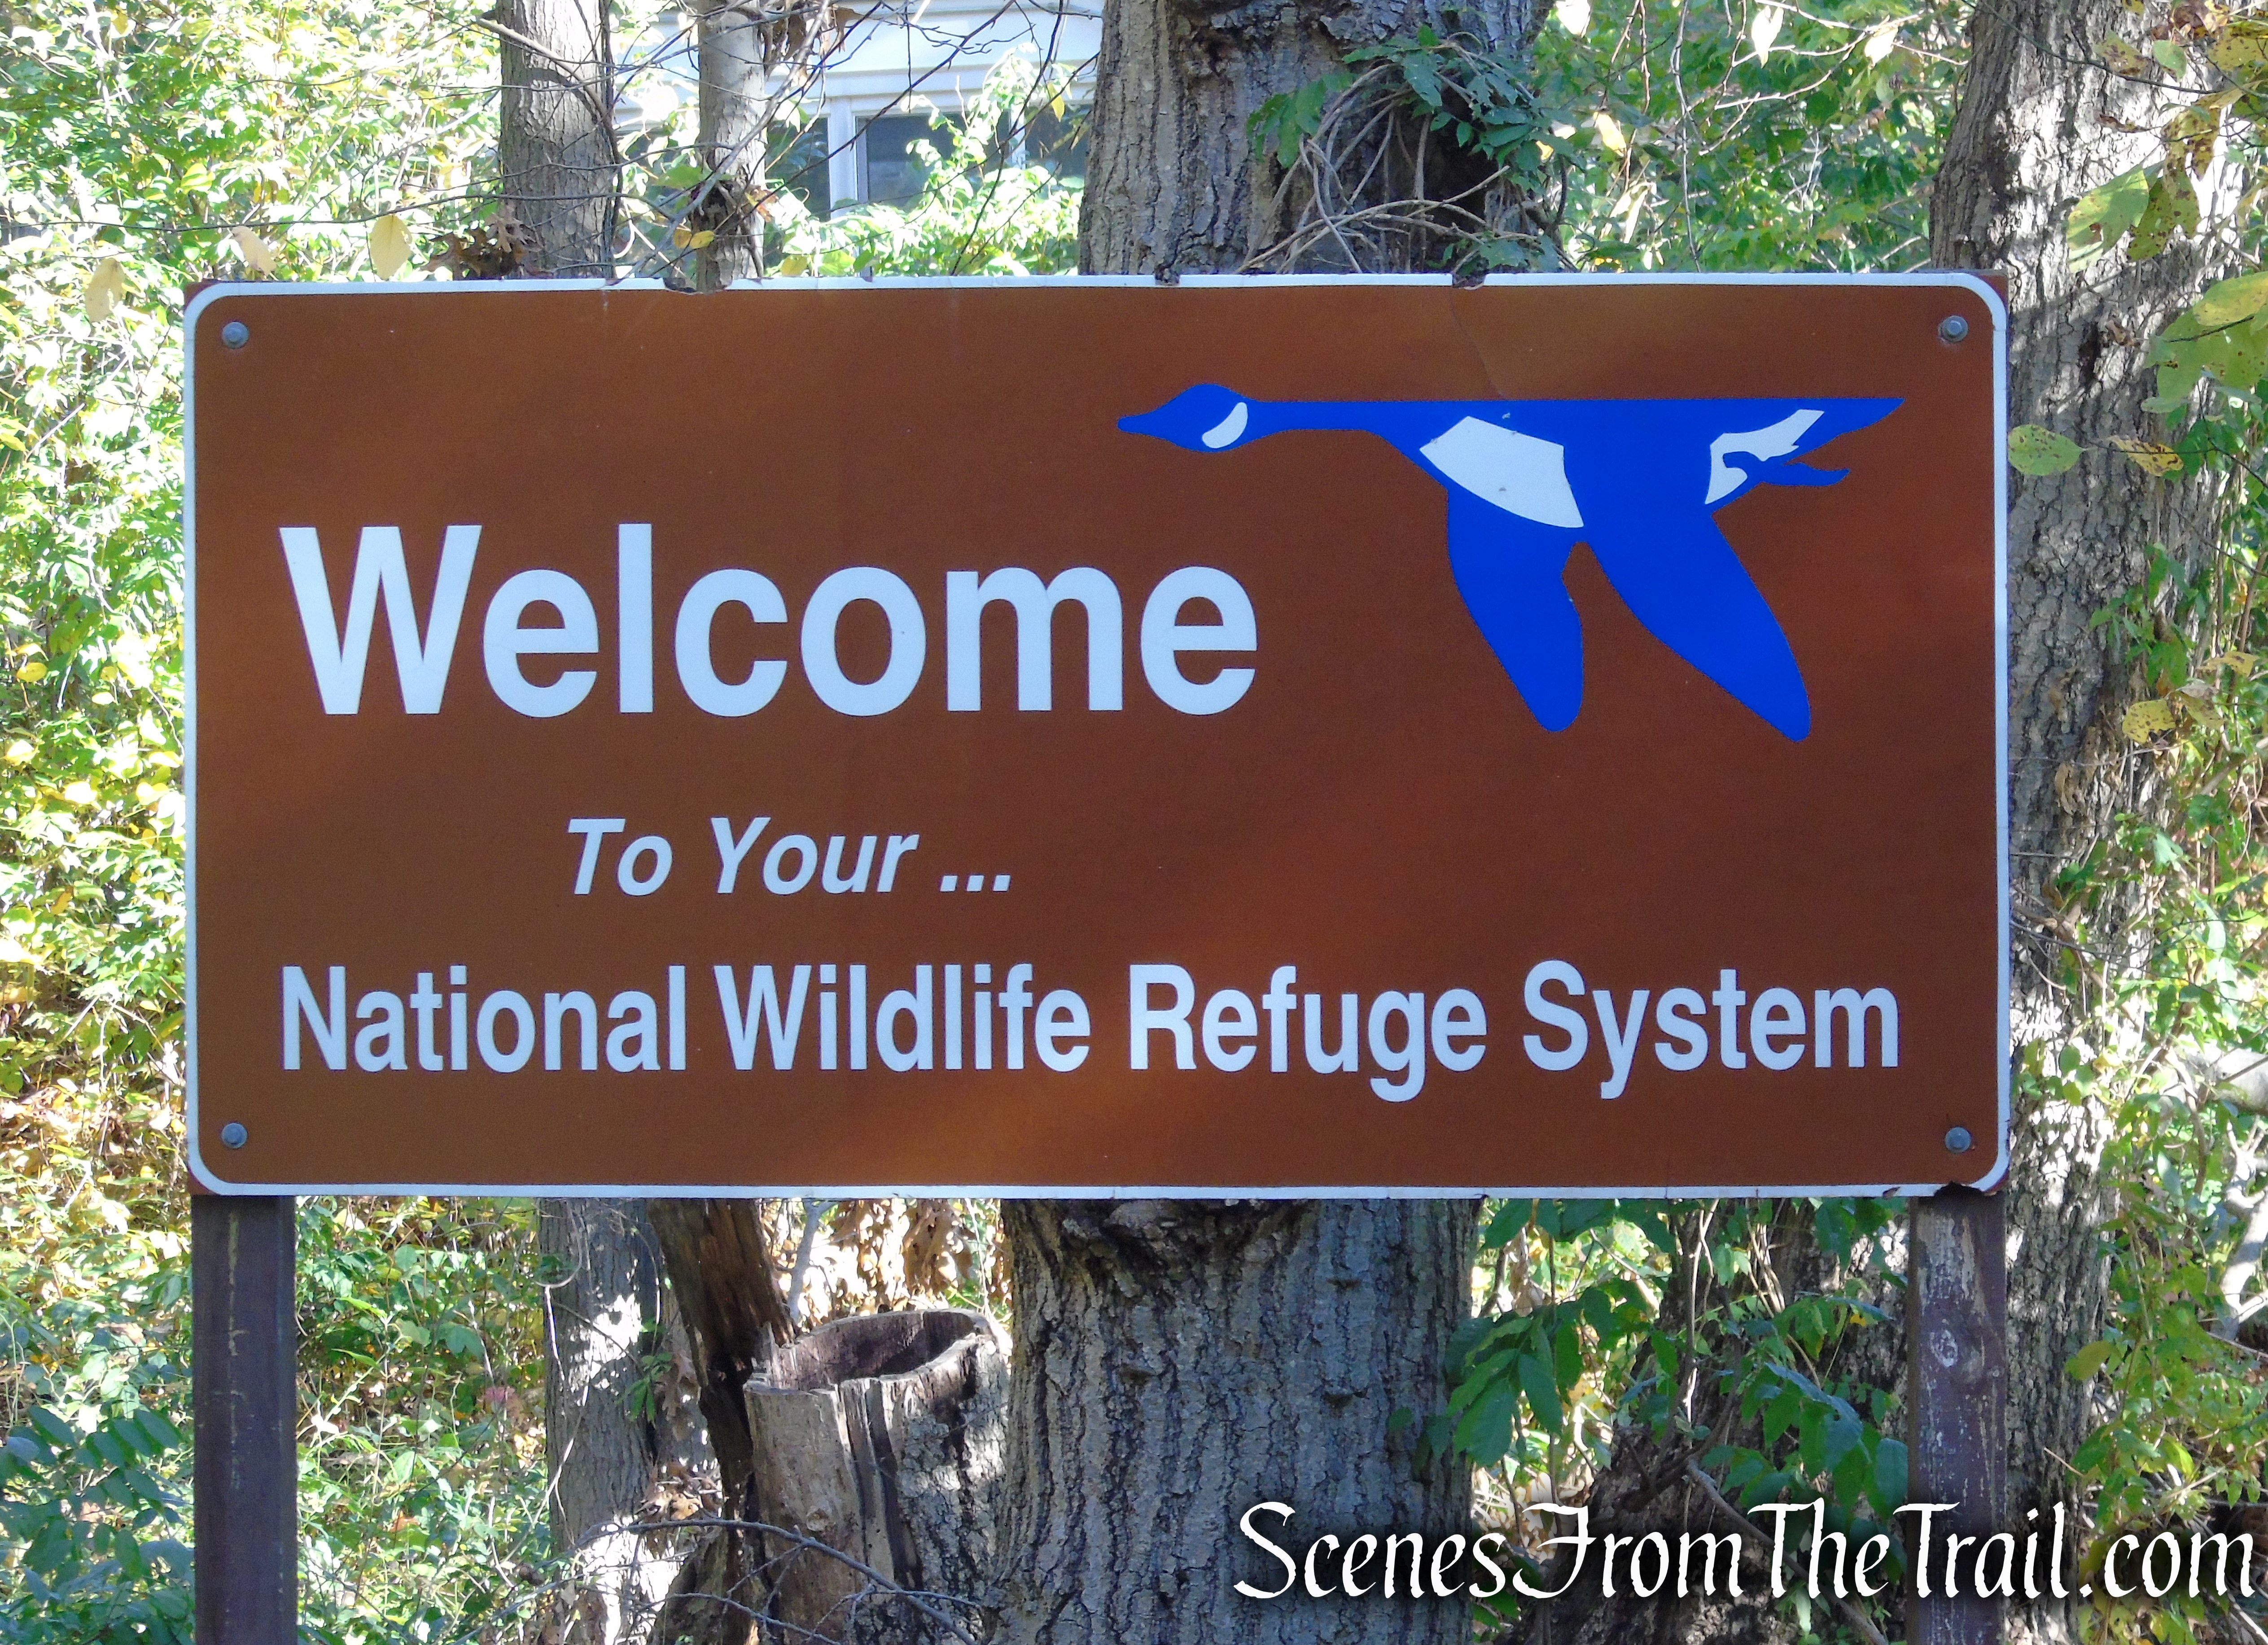 National Wildlife Refuge System